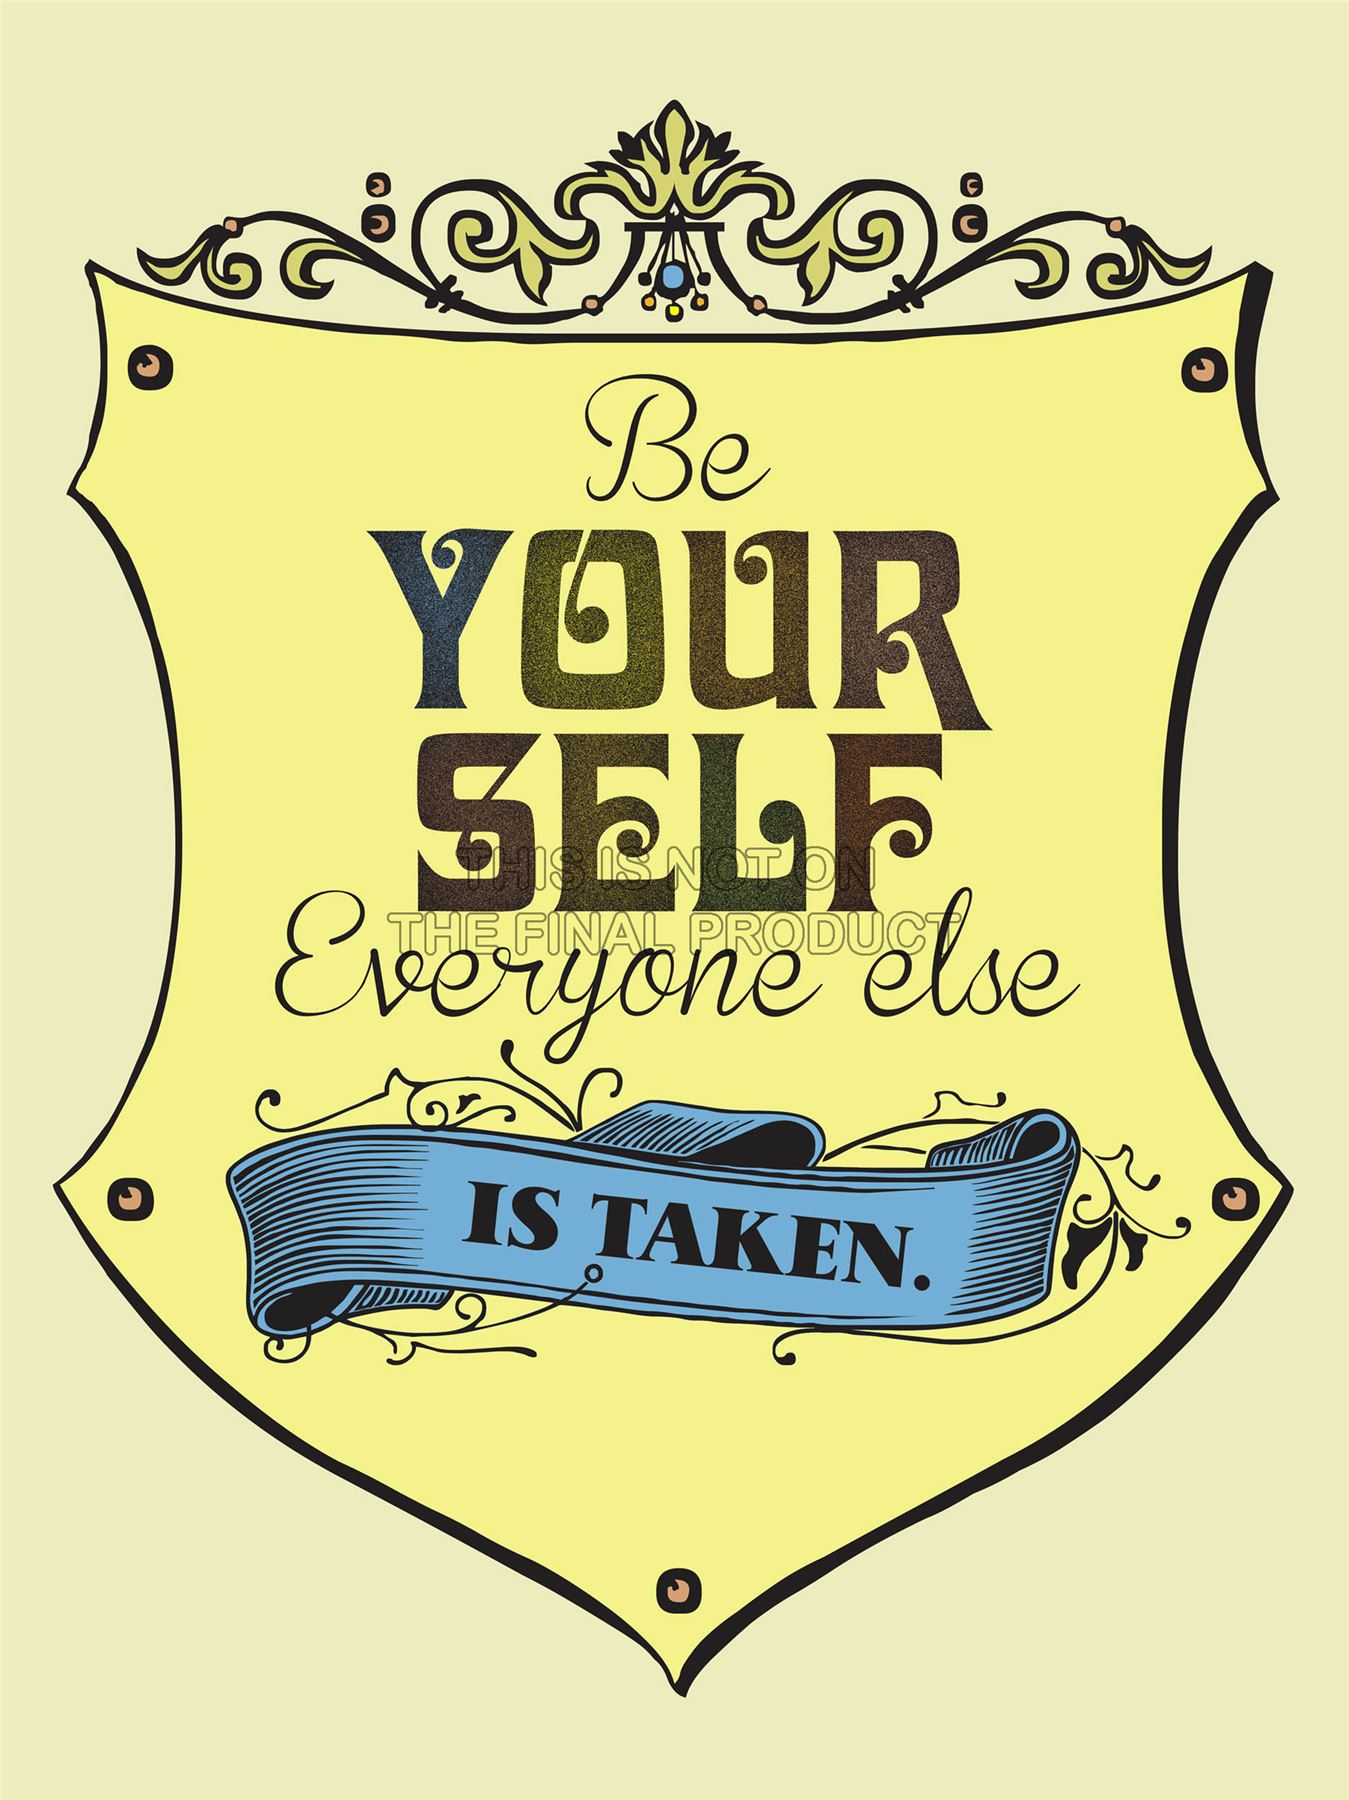 ... -EVERYONE-ELSE-TAKEN-WILDE-QUOTE-TYPOGRAPHY-MOTIVATION-POSTER-QU212A